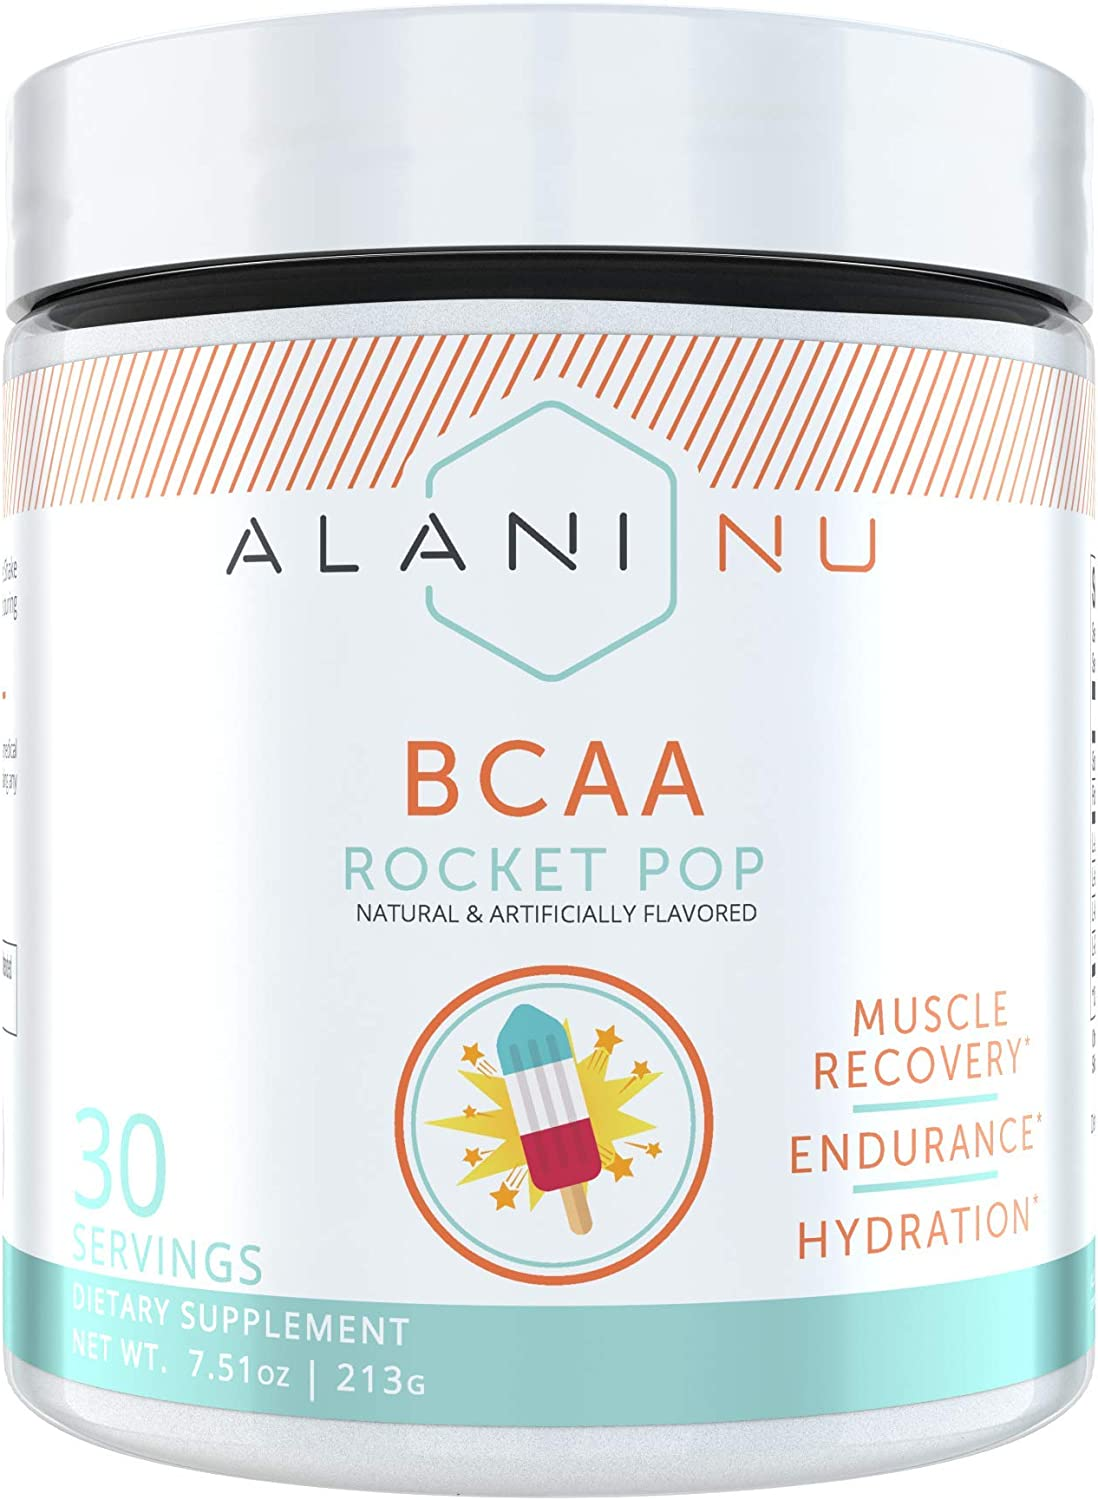 Alani Nu BCAA Branched Chain Essential Amino Acids, Muscle Recovery Vitamins for Post-Workout and Hydration, Rocket Pop, 30 Servings